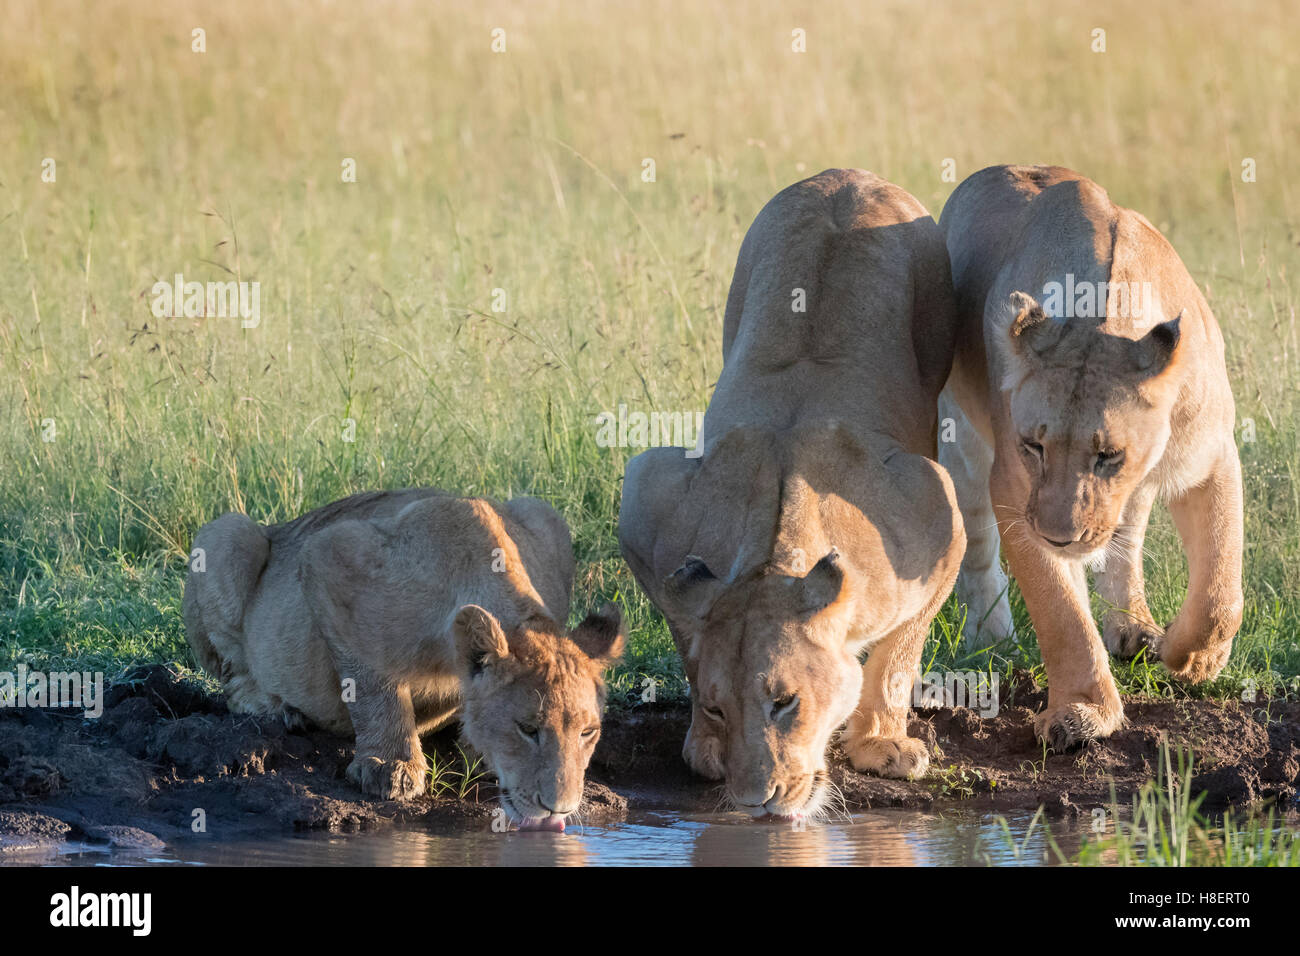 Lionnes (Panthera leo) with cubs drinking at a waterhole in the Masai Mara National Reserve, Kenya - Stock Image